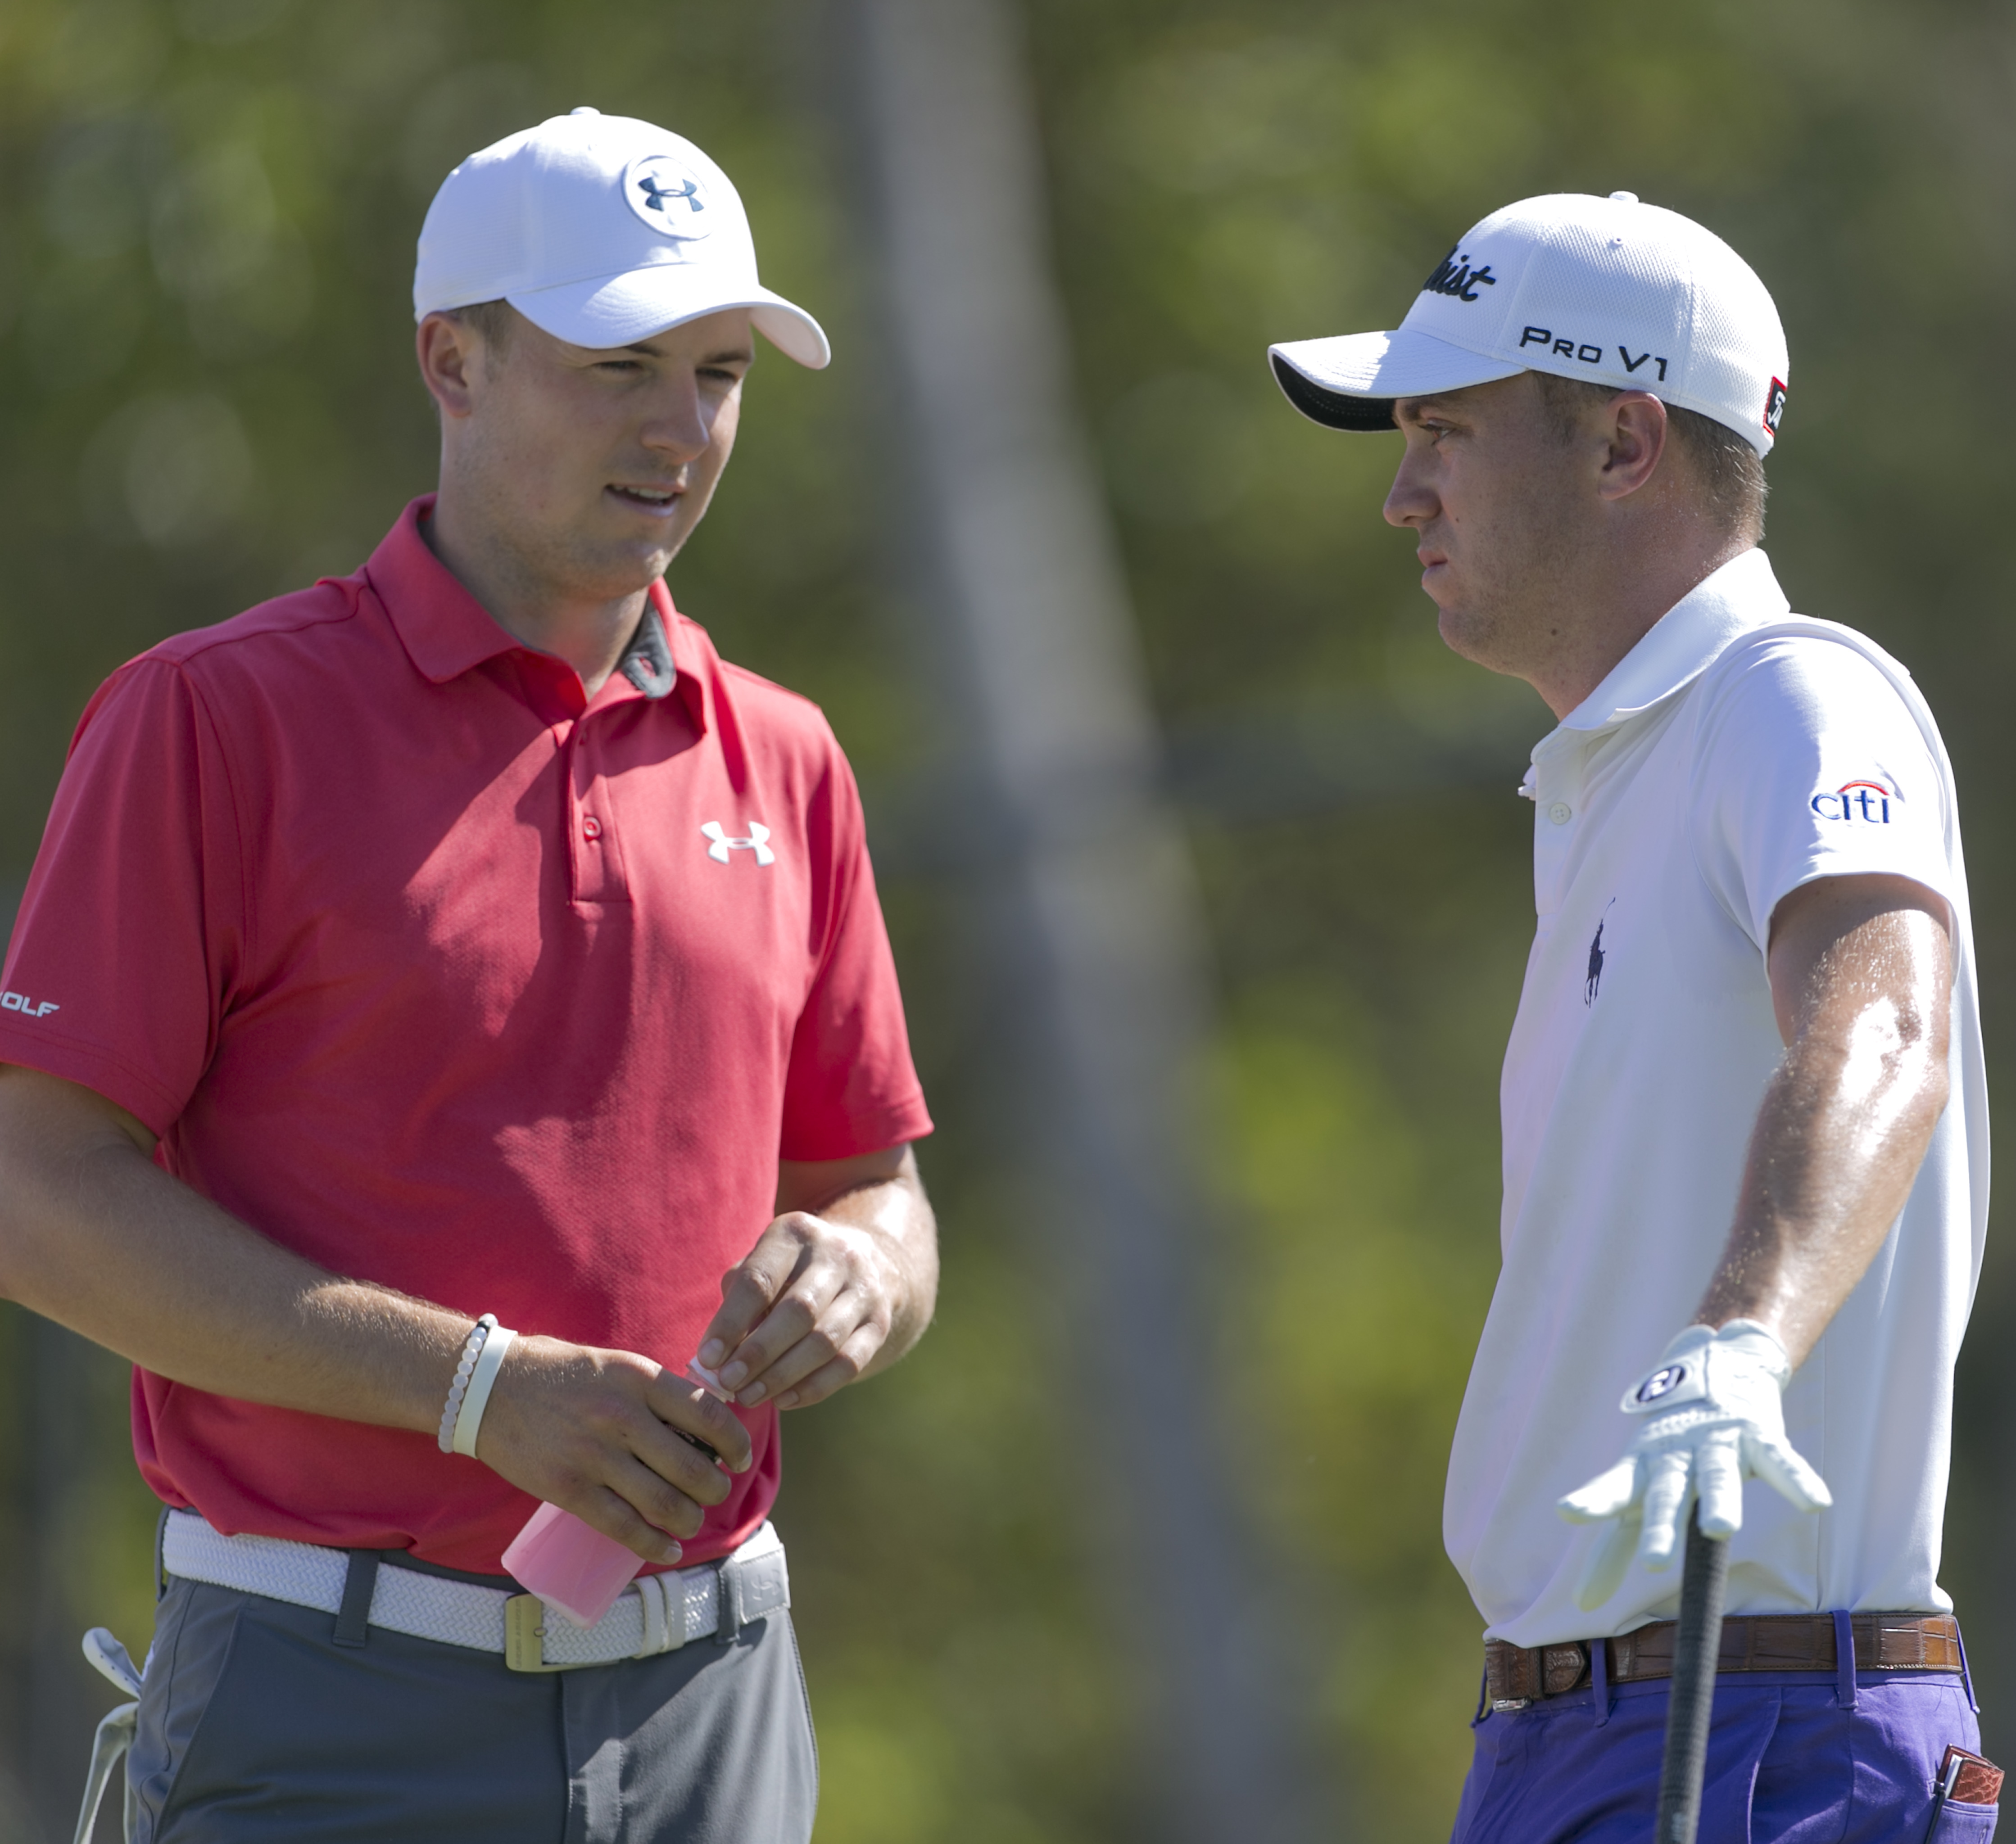 Jordan Spieth, left, and Justin Thomas chat before their second round at the Sony Open golf tournament, Friday, Jan. 13, 2017, in Honolulu. (AP Photo/Marco Garcia)